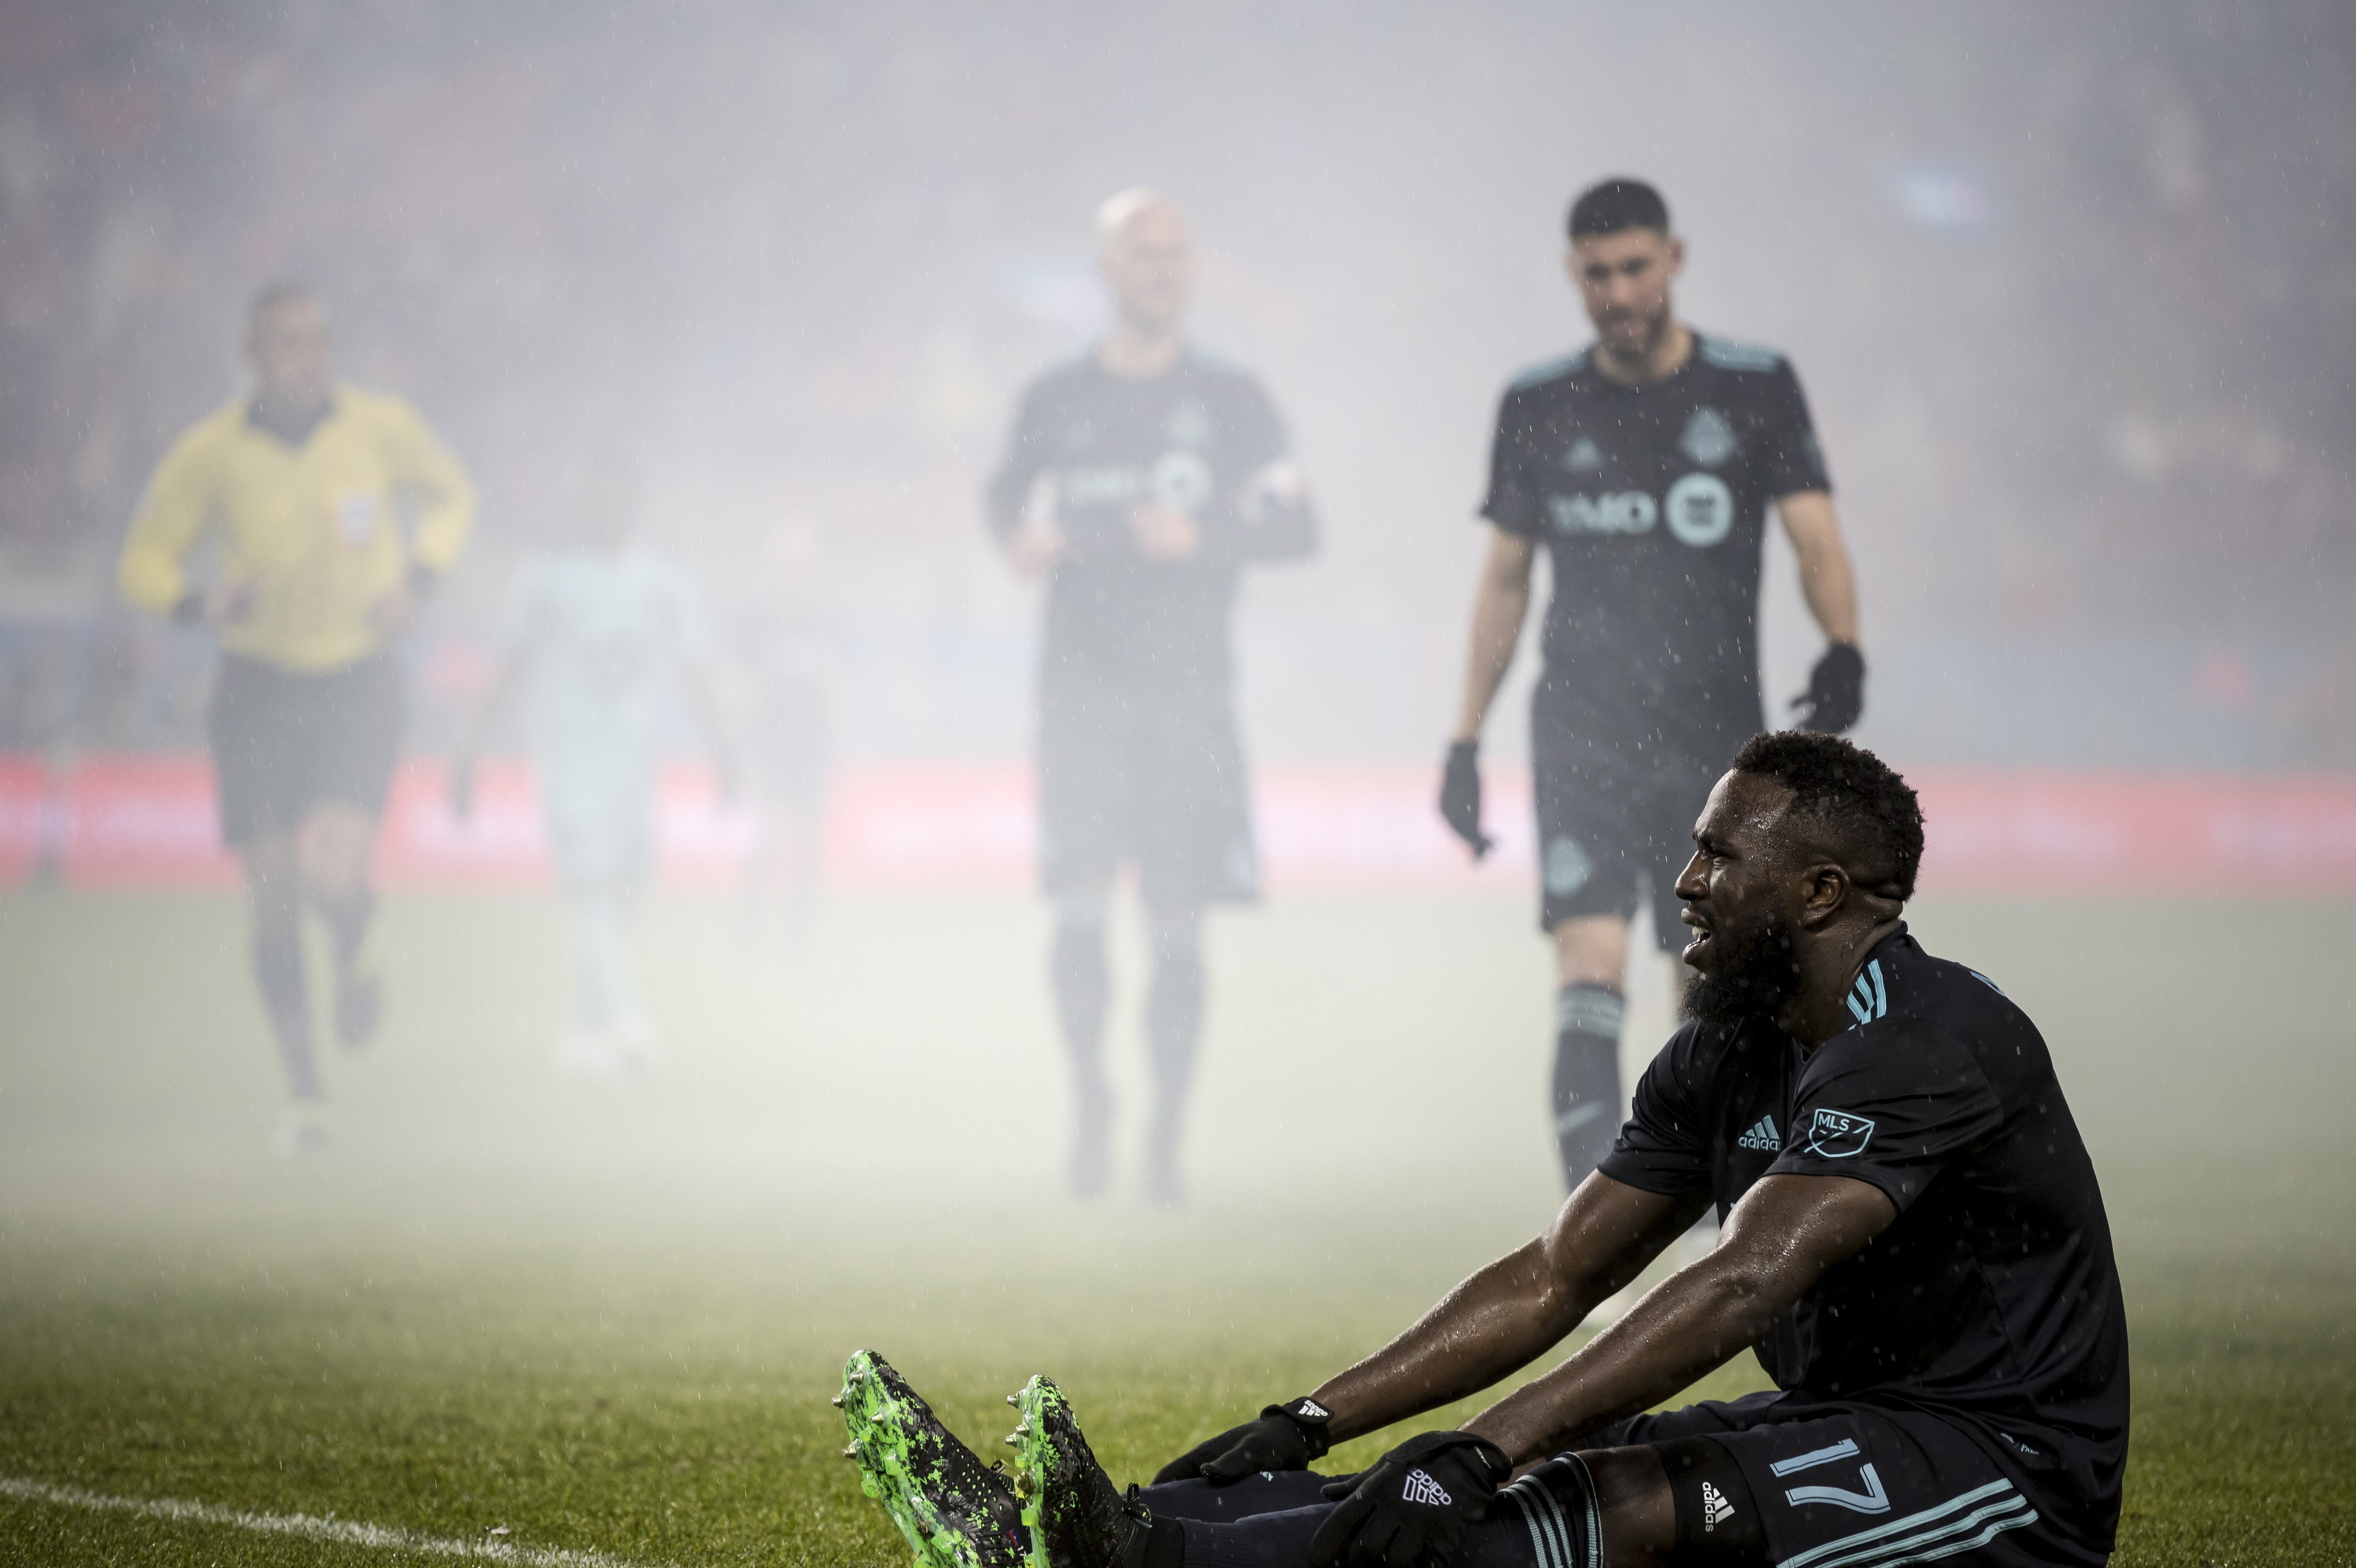 US forward Altidore sidelined with hamstring injury